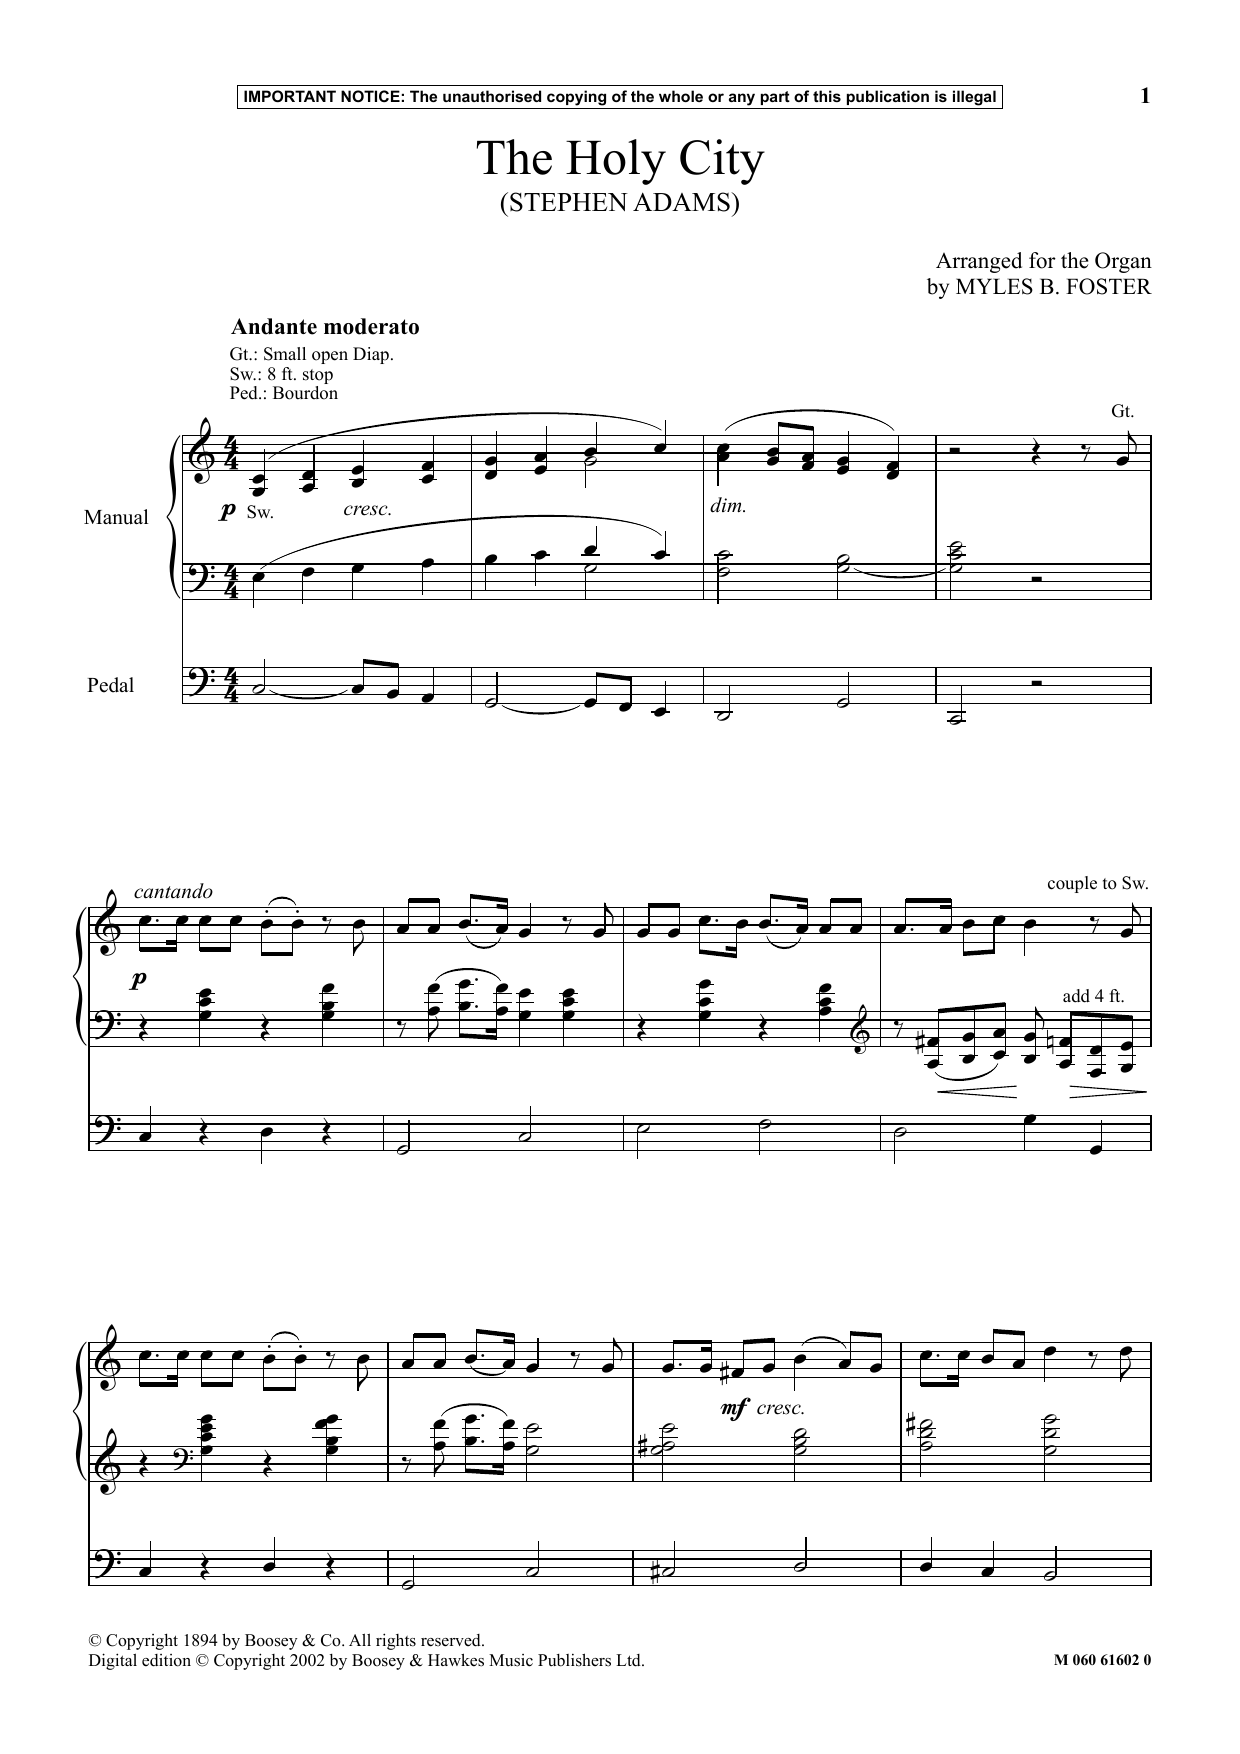 Myles B. Foster The Holy City sheet music notes and chords. Download Printable PDF.